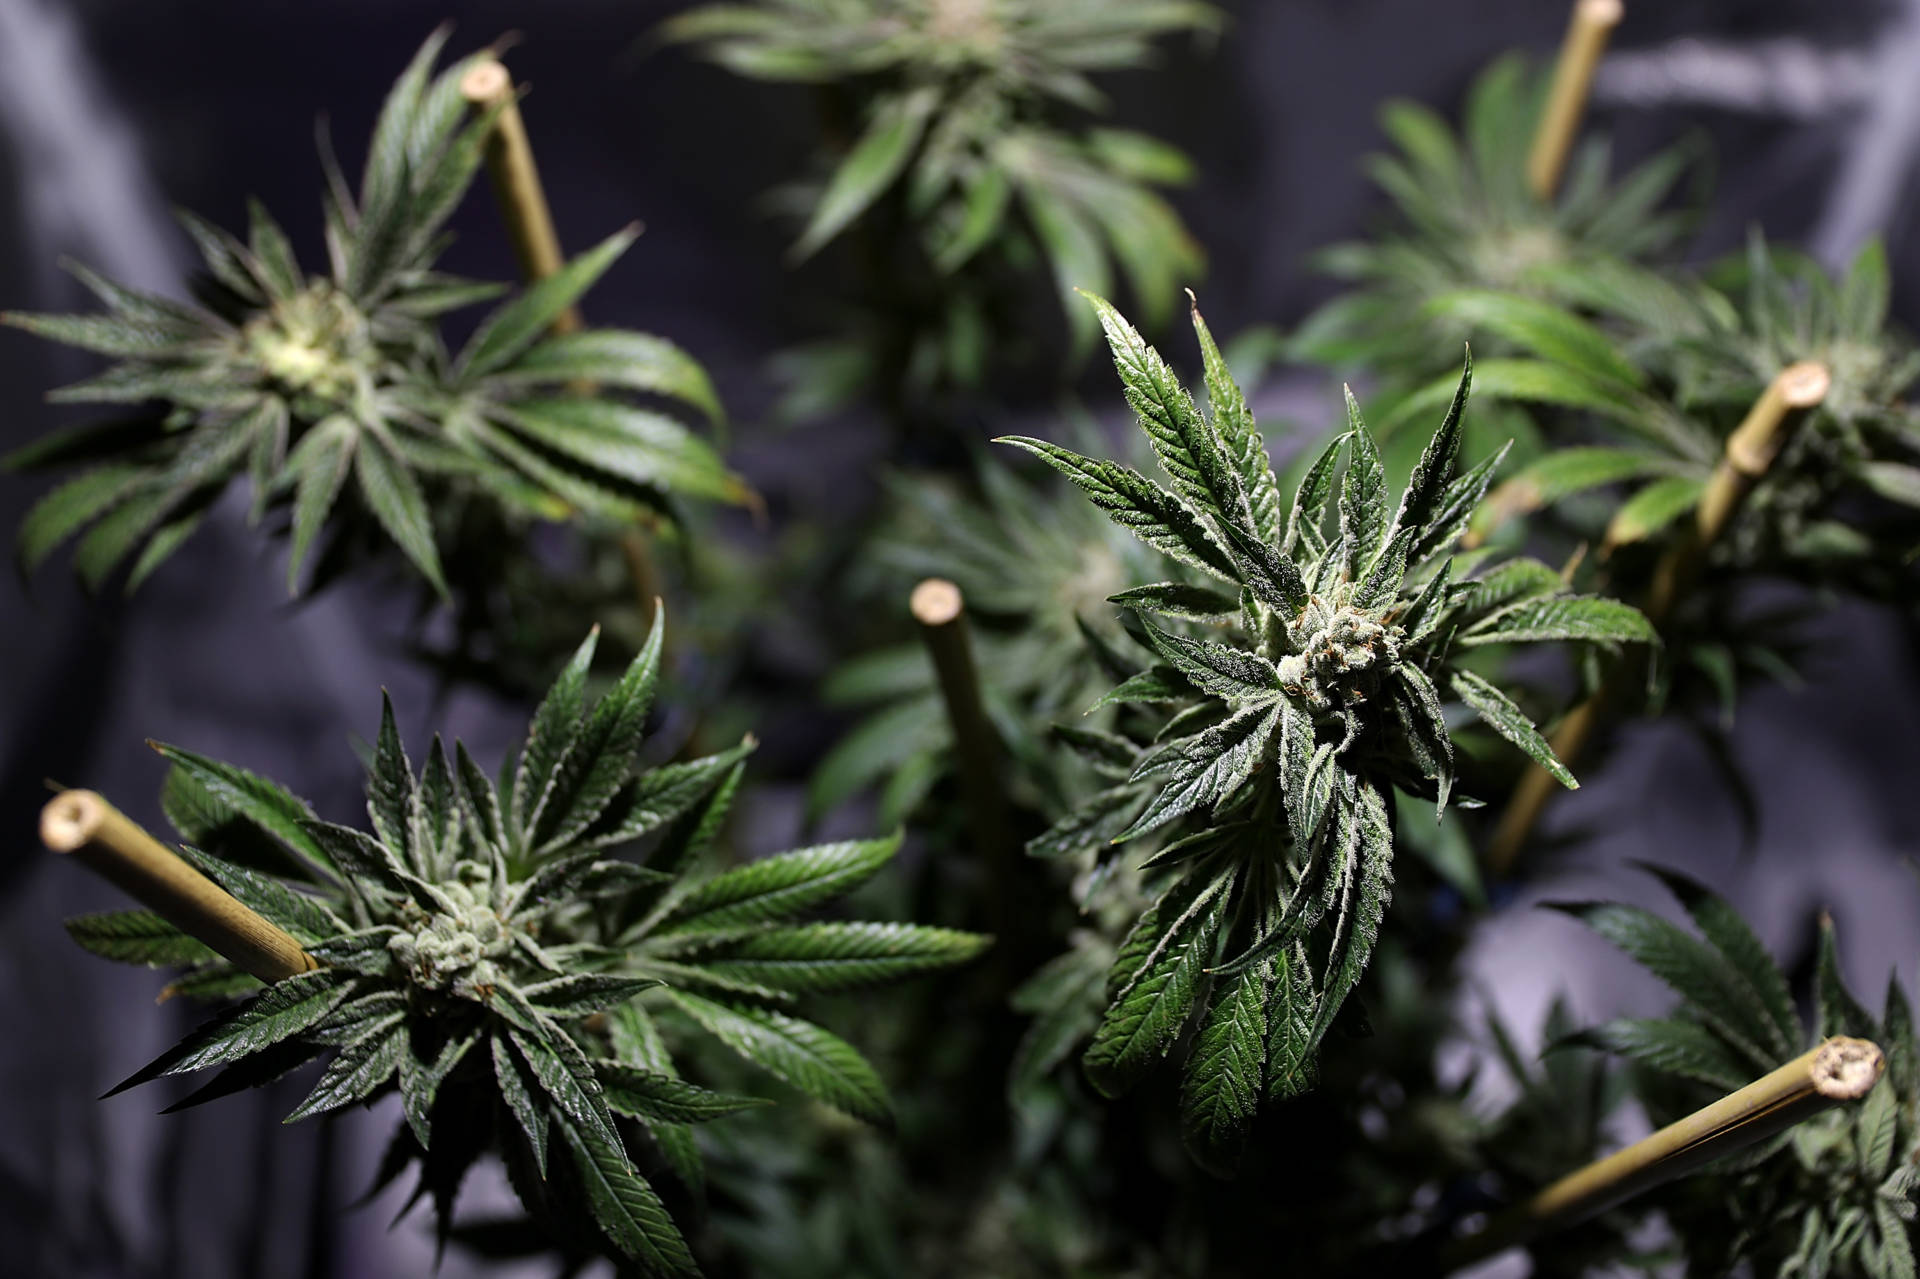 A marijuana plant is displayed during the 2016 Cannabis Business Summit and Expo on Jun. 22 in Oakland. Justin Sullivan/Getty Images